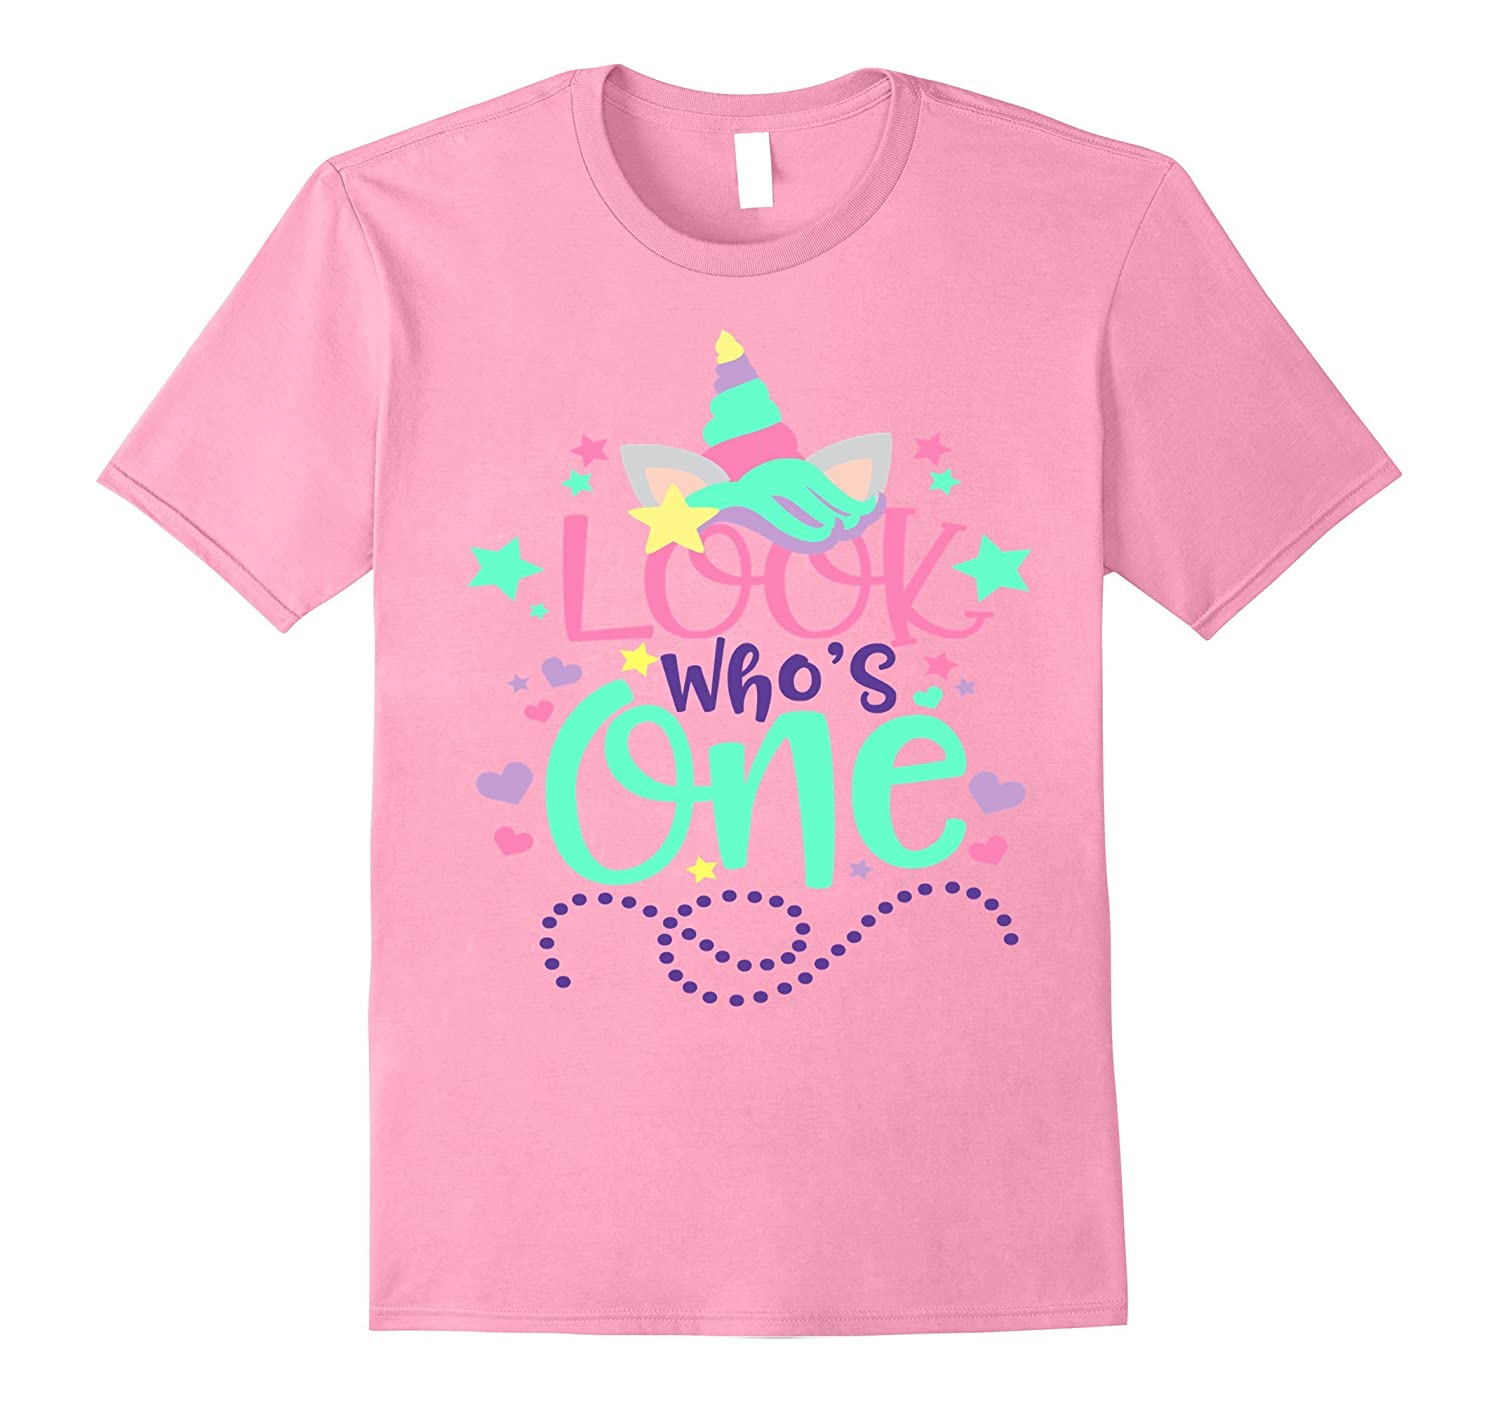 7bbf2bc55 Baby's First Birthday Unicorn Shirt Look Who's One 1 Mom Dad-TH ...